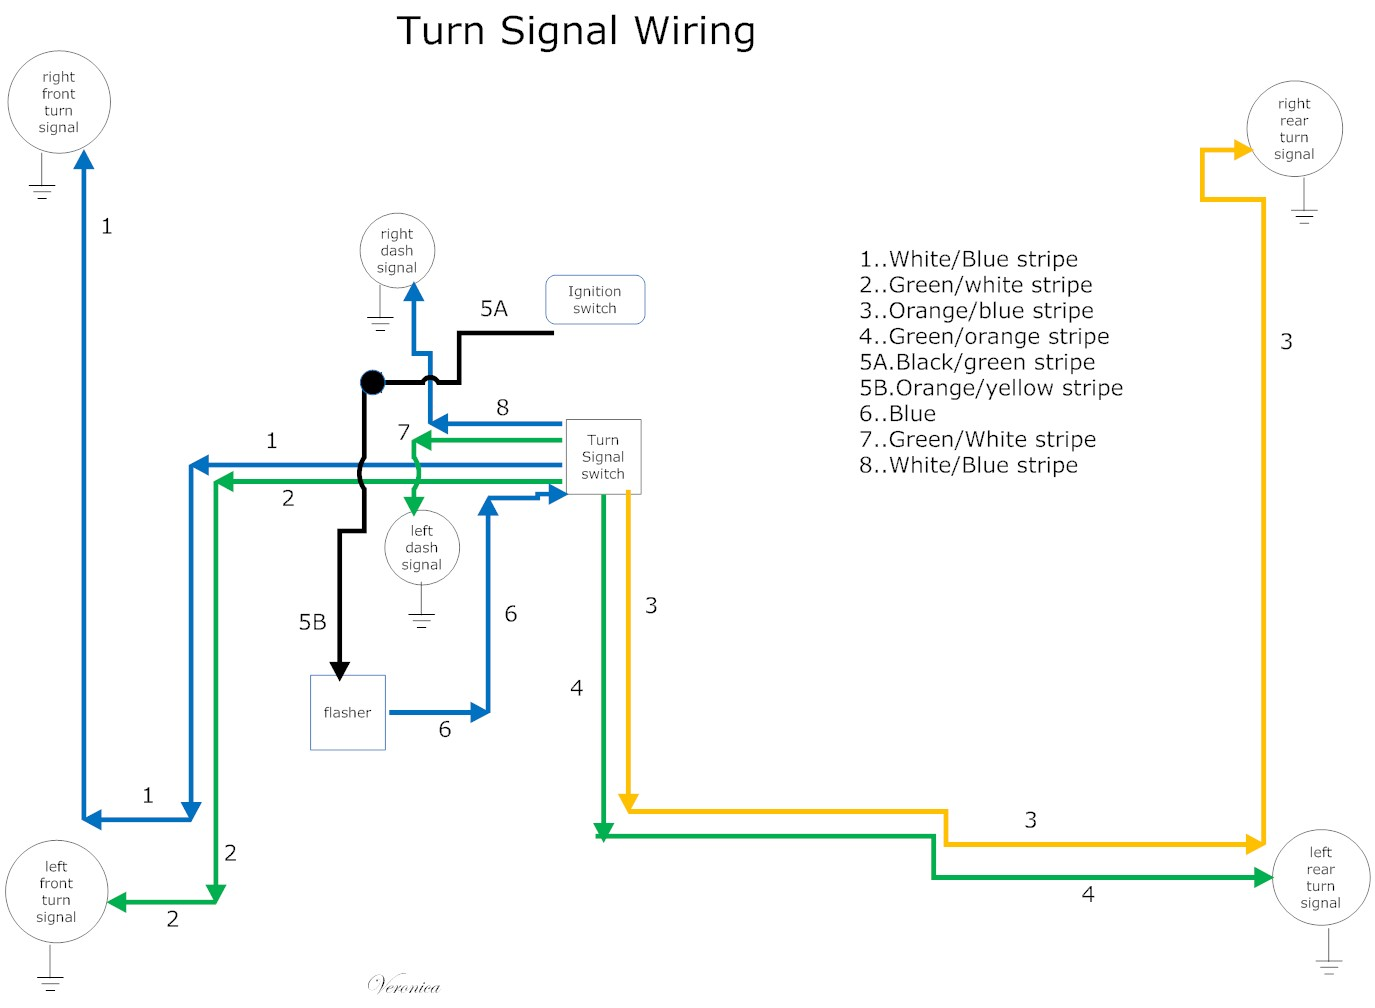 Turn+signal+Wiring the care and feeding of ponies 1965 1966 mustang turn signal jeep wrangler turn signal wiring diagram at gsmx.co